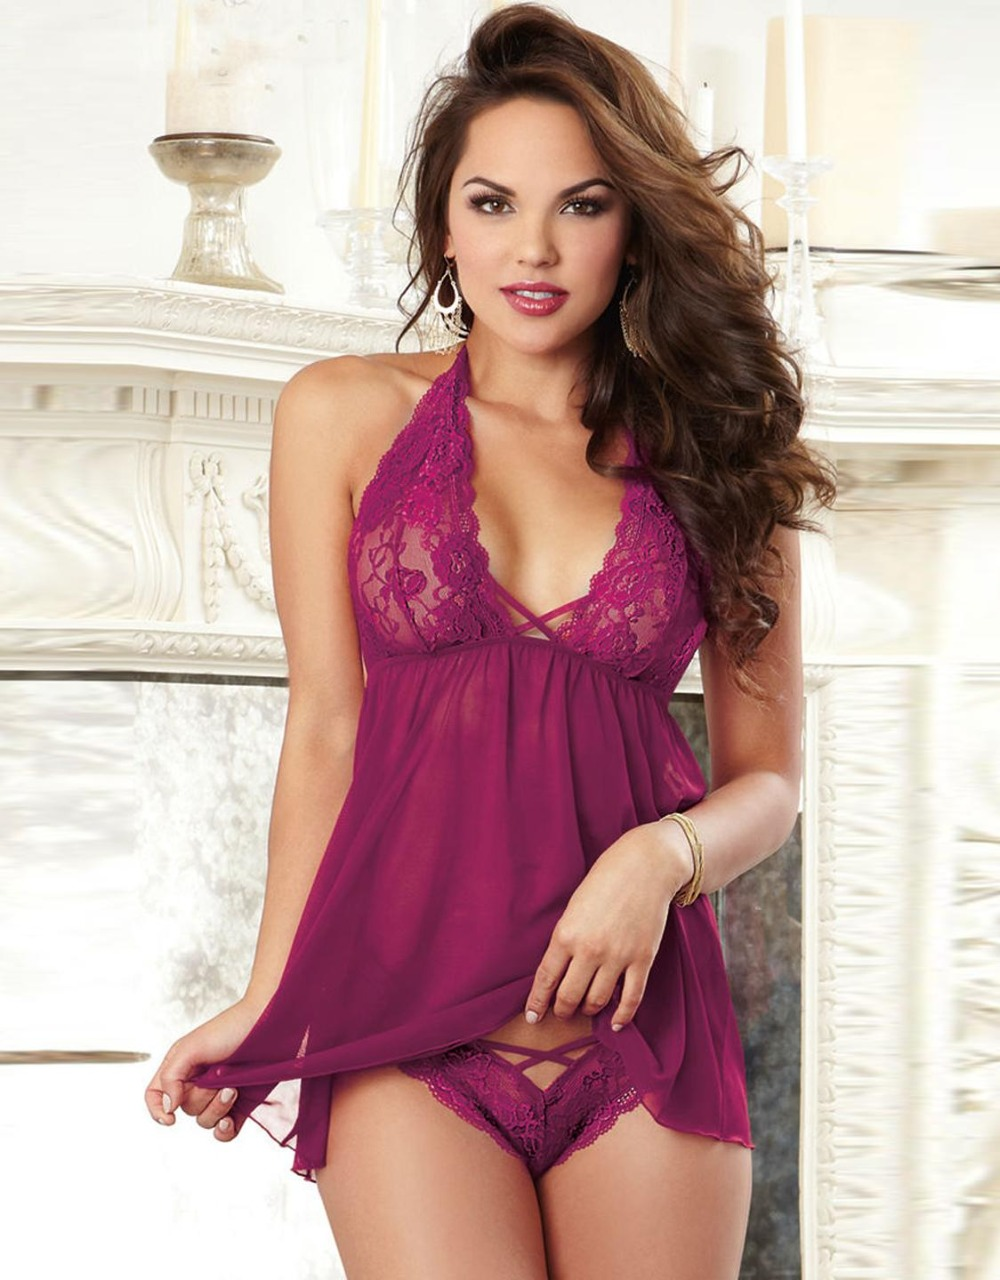 M-3XL sexy lingerie hot soft lace Sling deep V-neck Teddy chemise SM cosplay sexy plus size lingerie lenceria costumes W266542